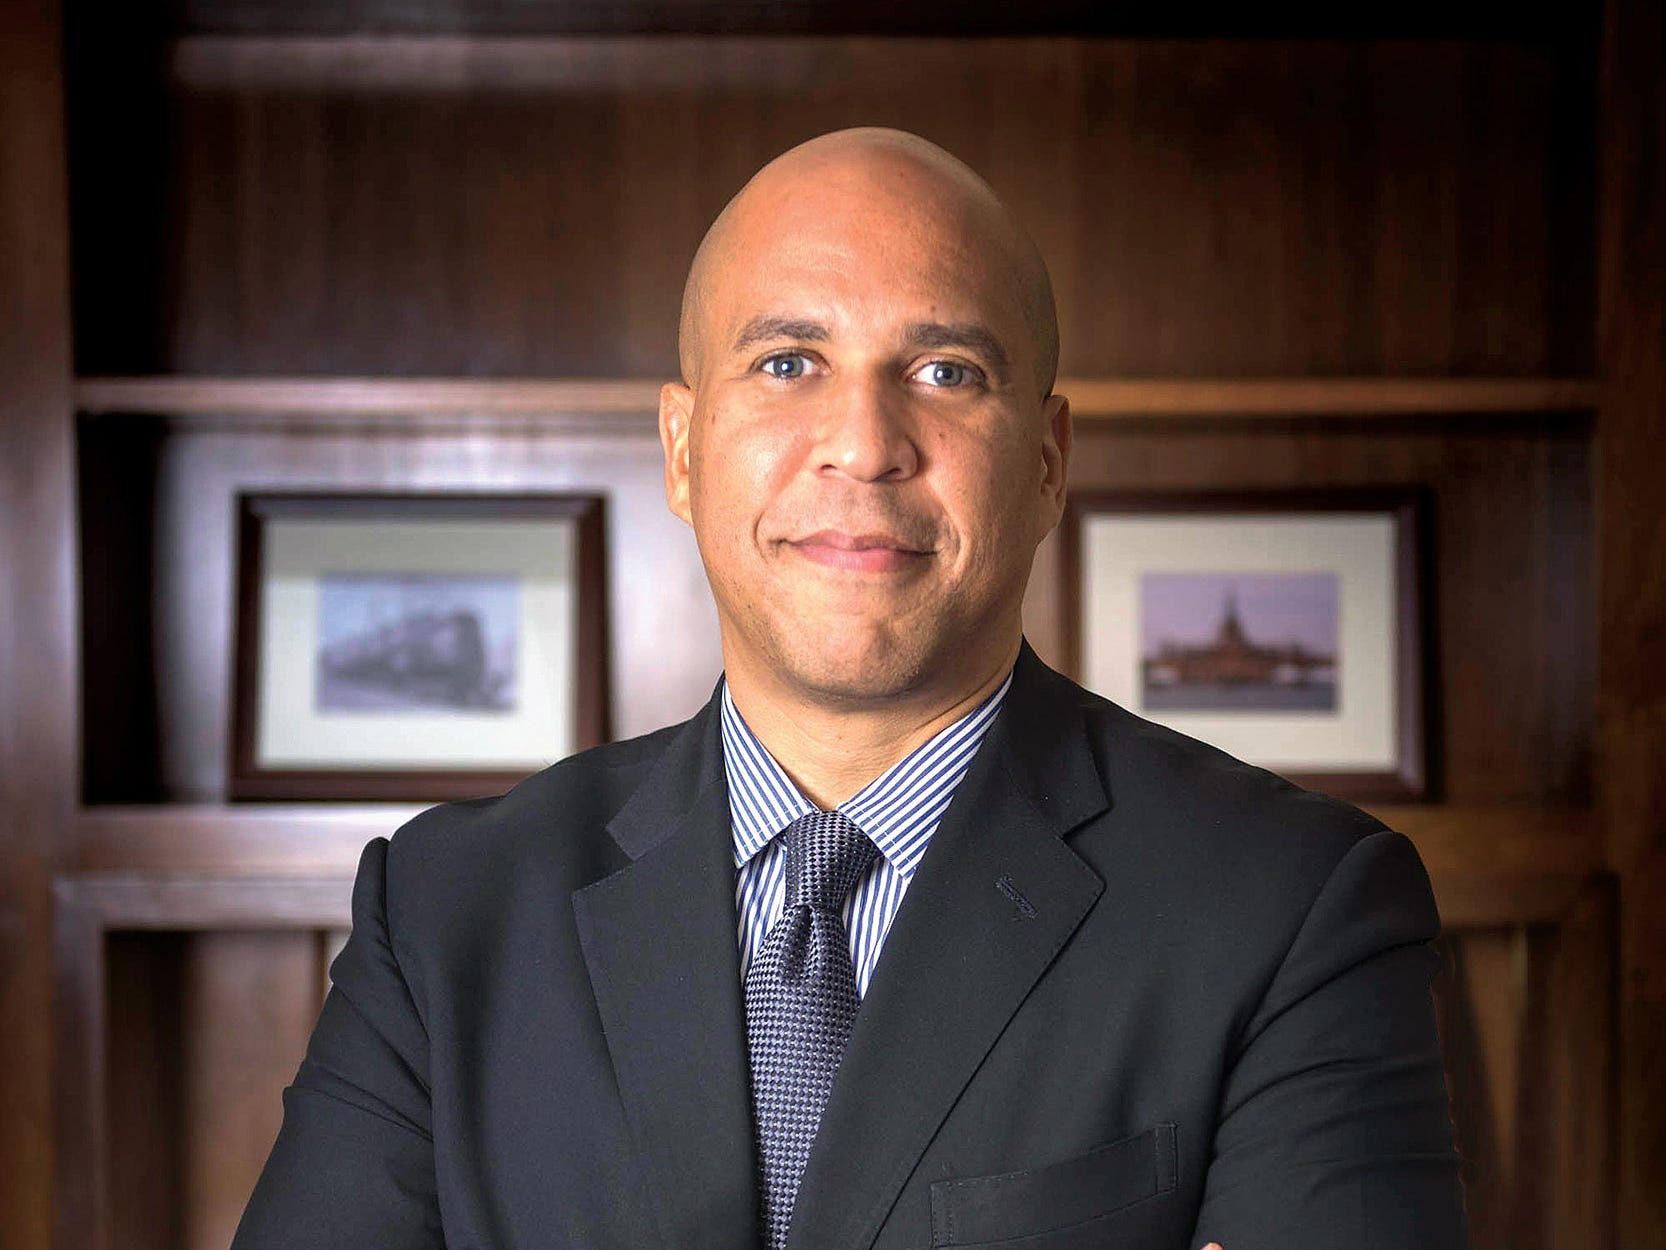 Jul 17, 2017; Washington, DC, USA;  Sen. Cory Booker (D-NJ) poses for a portrait in his Capitol Hill office. Booker is working on Dignity for Women in Prison legislation aimed at improving conditions for female inmates.